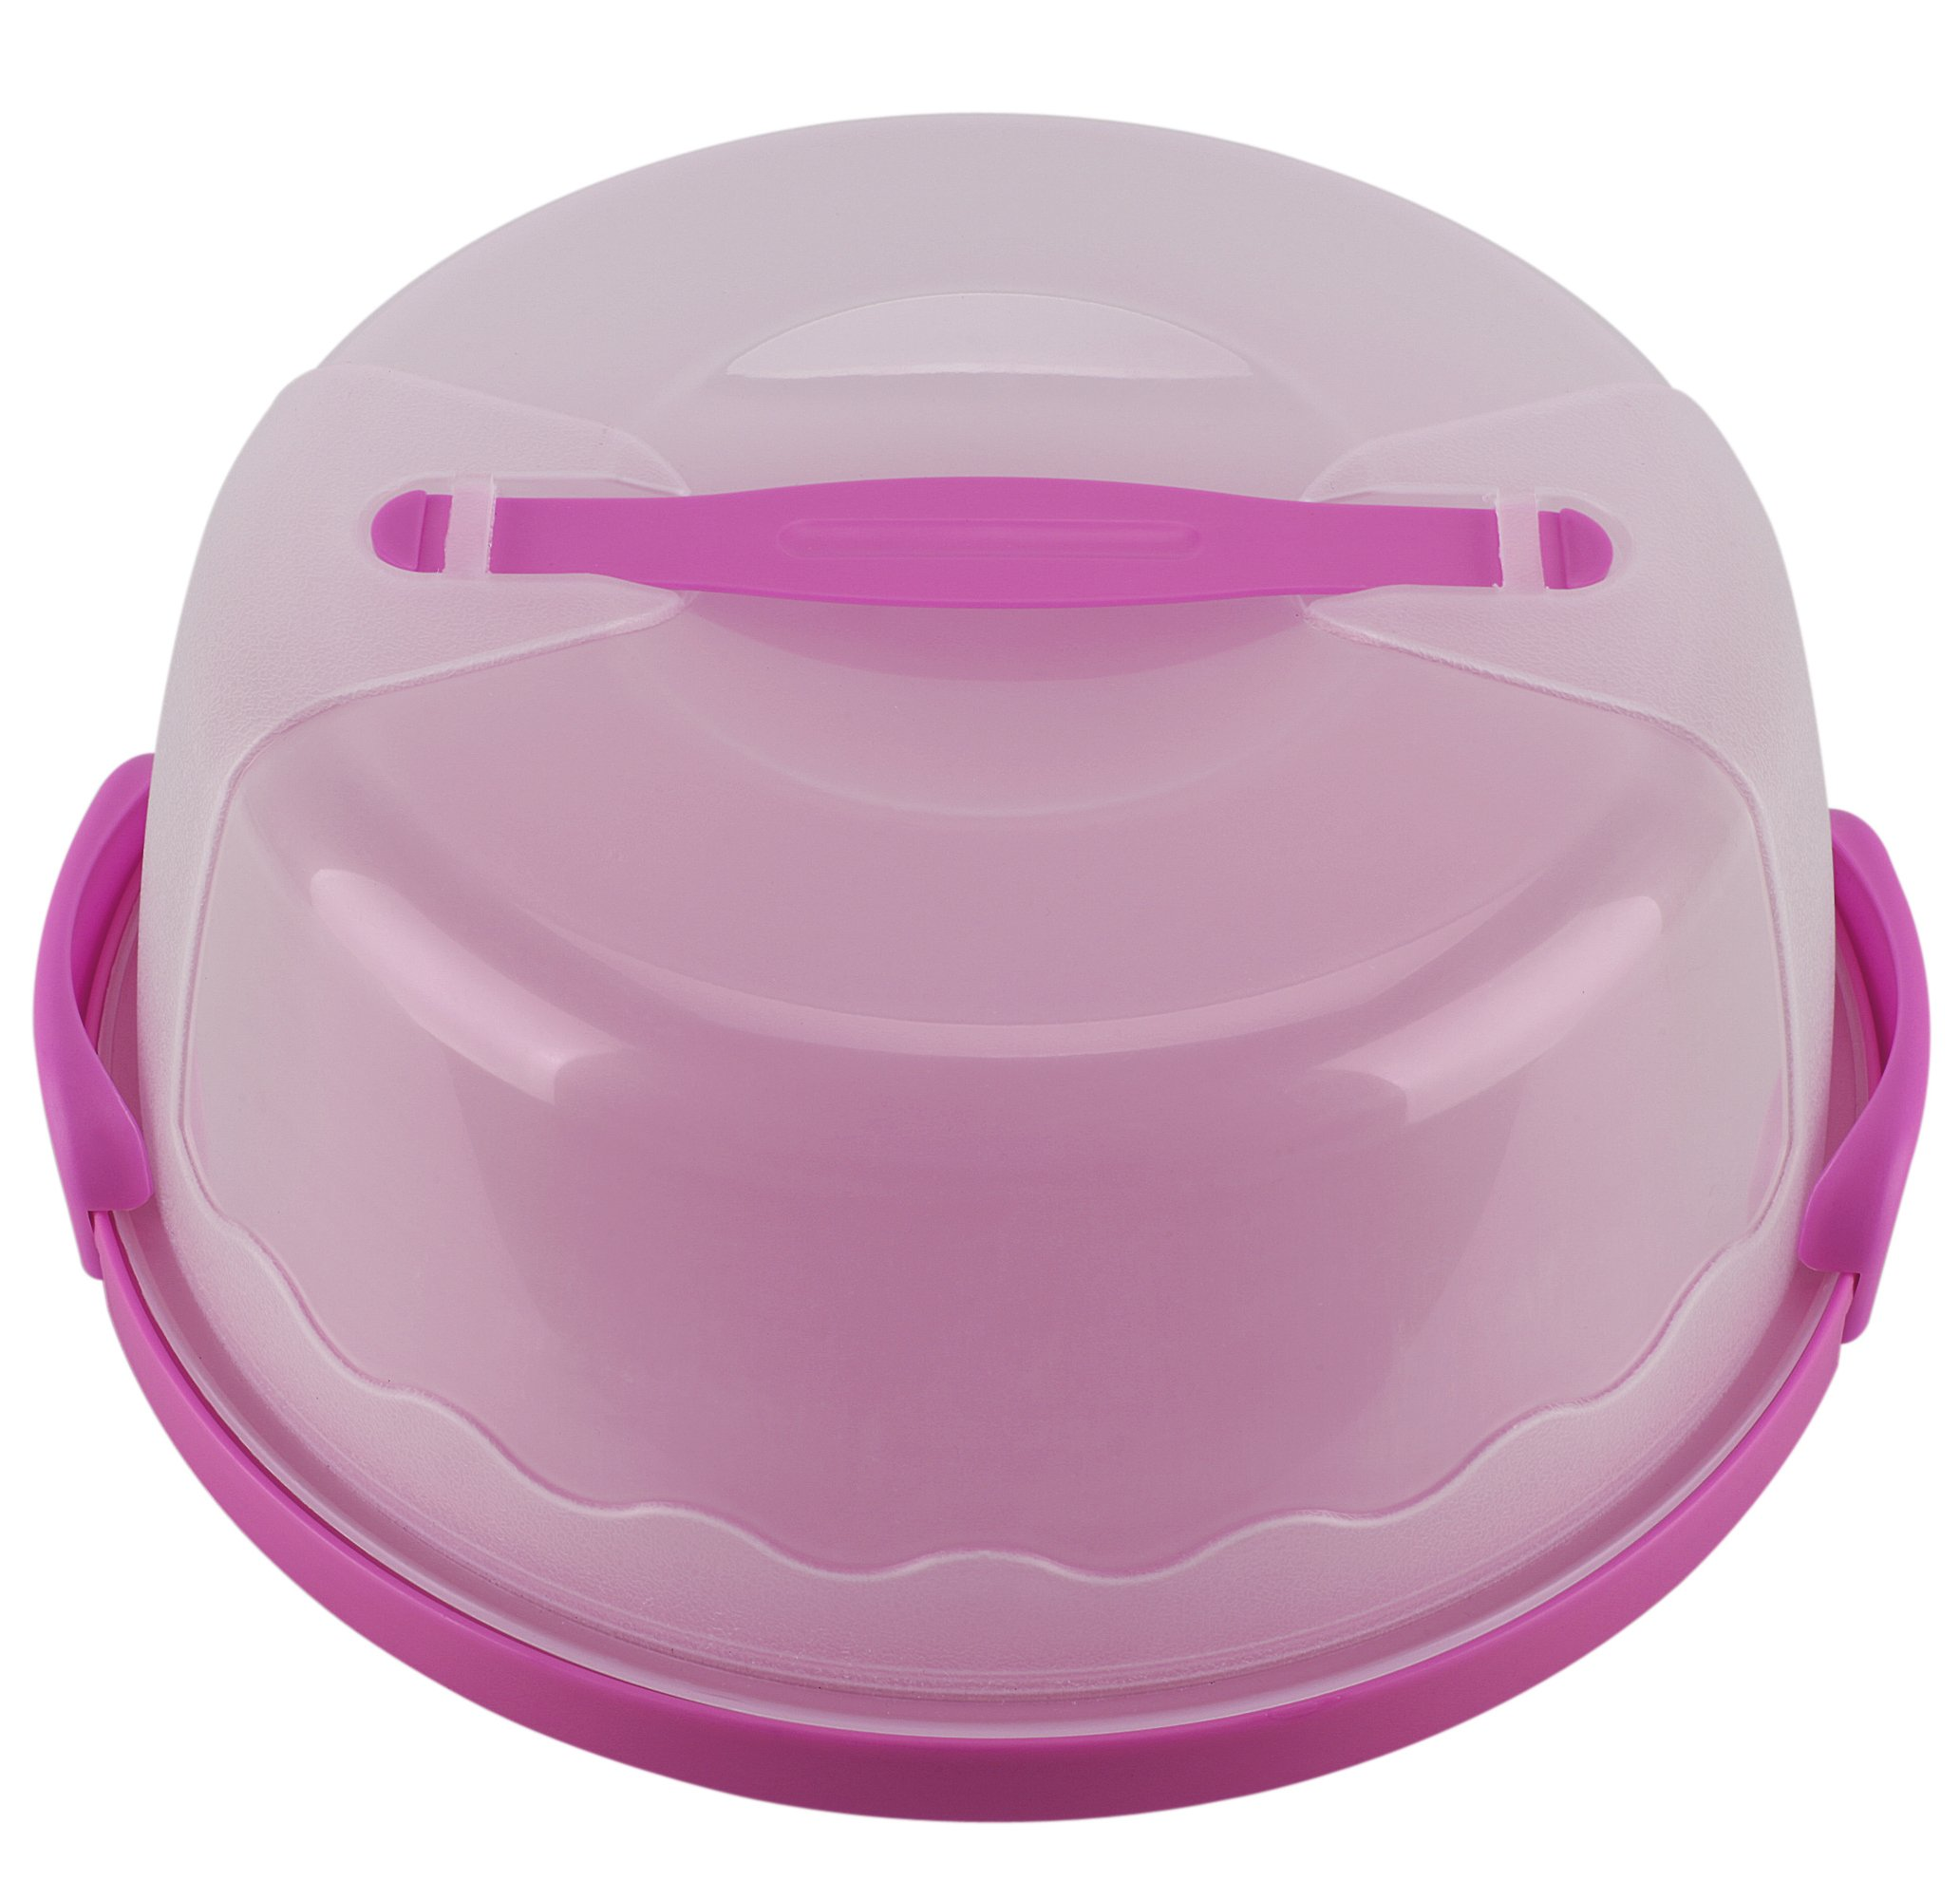 HelloCupcake Portable Cake and Cupcake Carrier / Storage Container - 10.4'' Diameter (Inside Cover), Translucent Dome - Perfect for Transporting Cakes, Cupcakes, Pies, or Other Desserts (Purple)